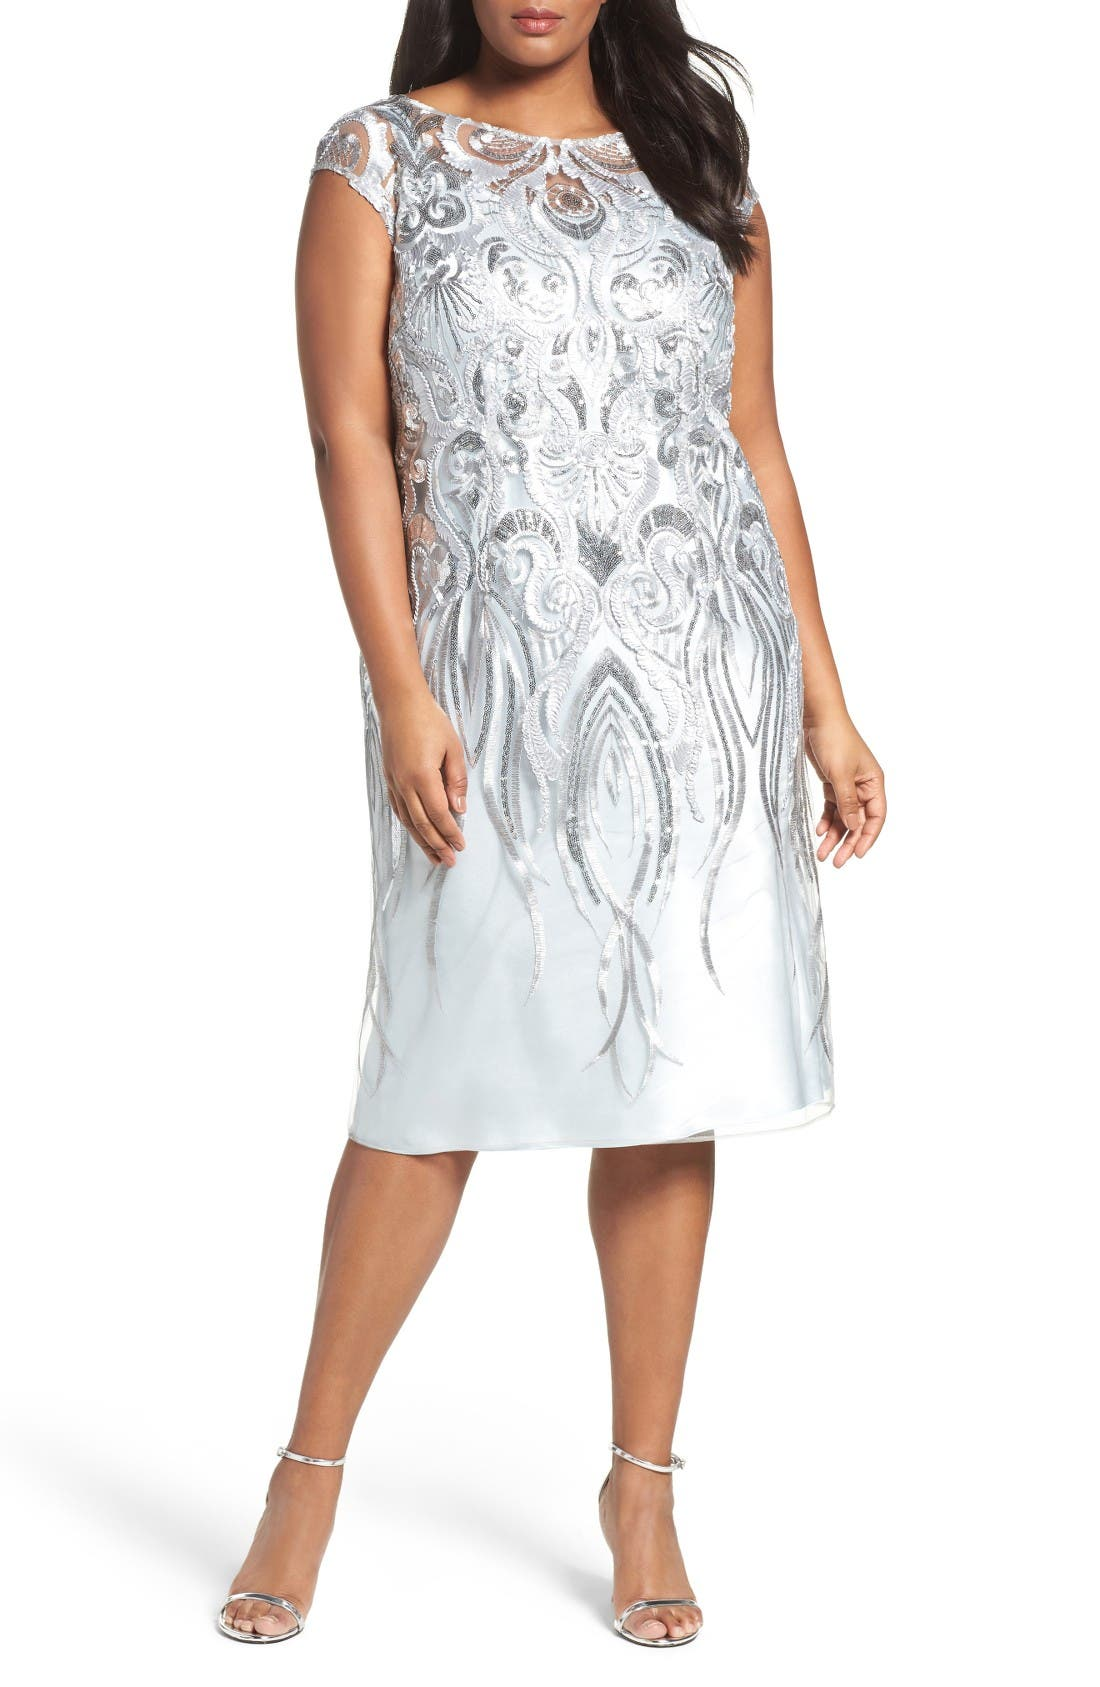 Brianna Embellished Bateau Neck Cocktail Dress (Plus Size)